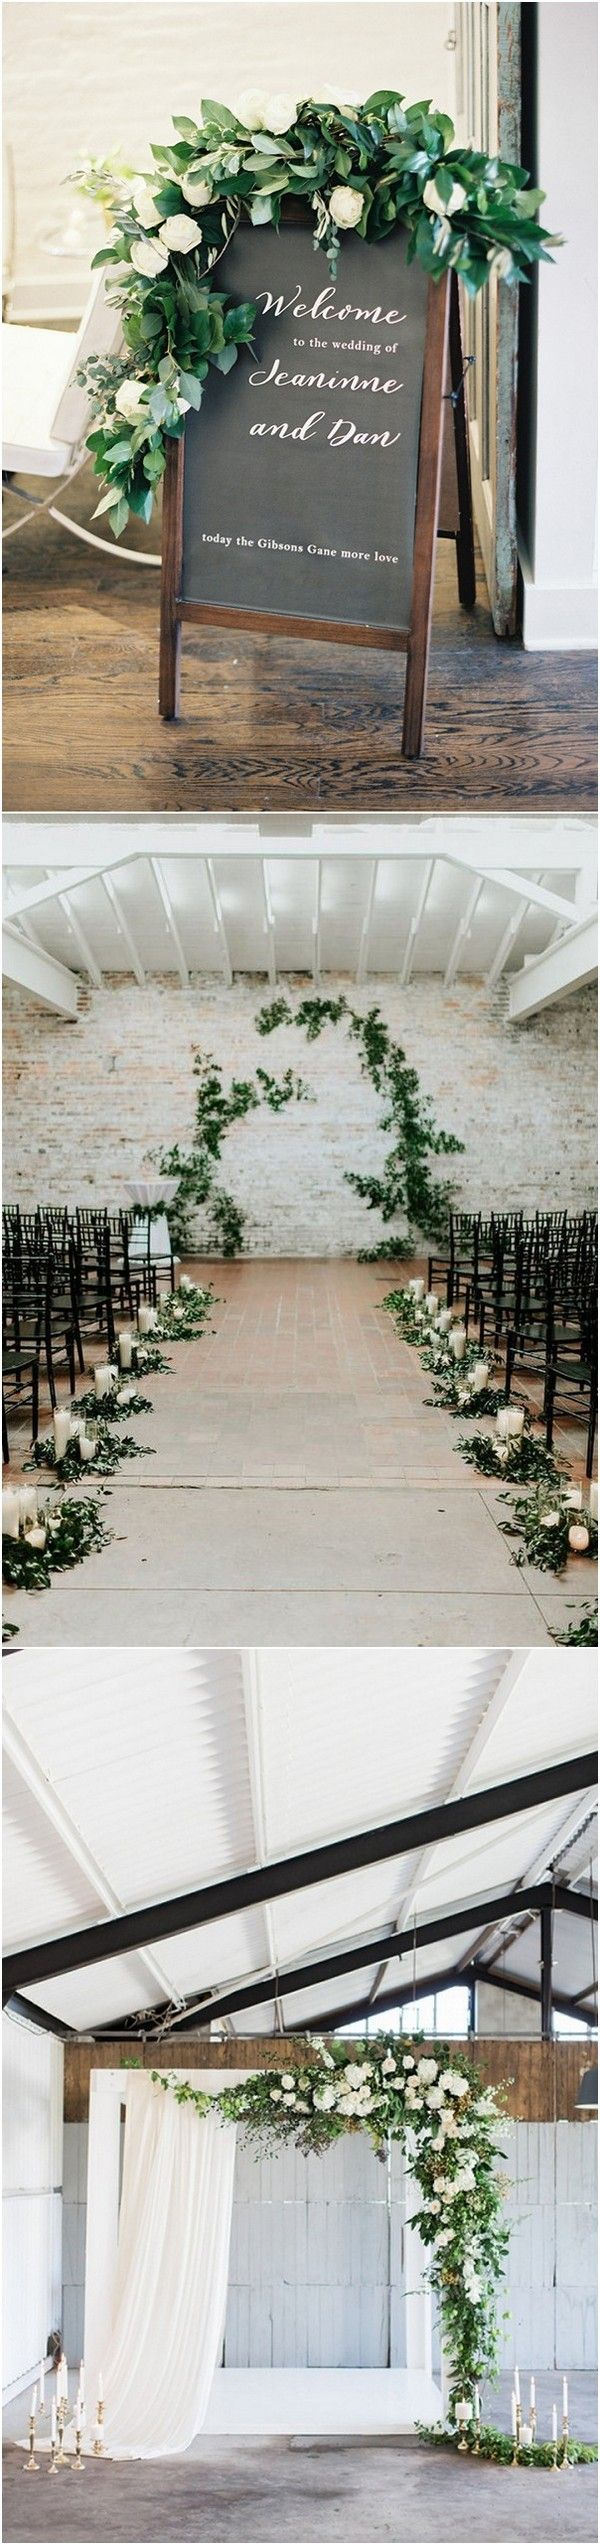 Wedding decoration ideas 2018  Trending Elegant Green and Grey Wedding Color Ideas for